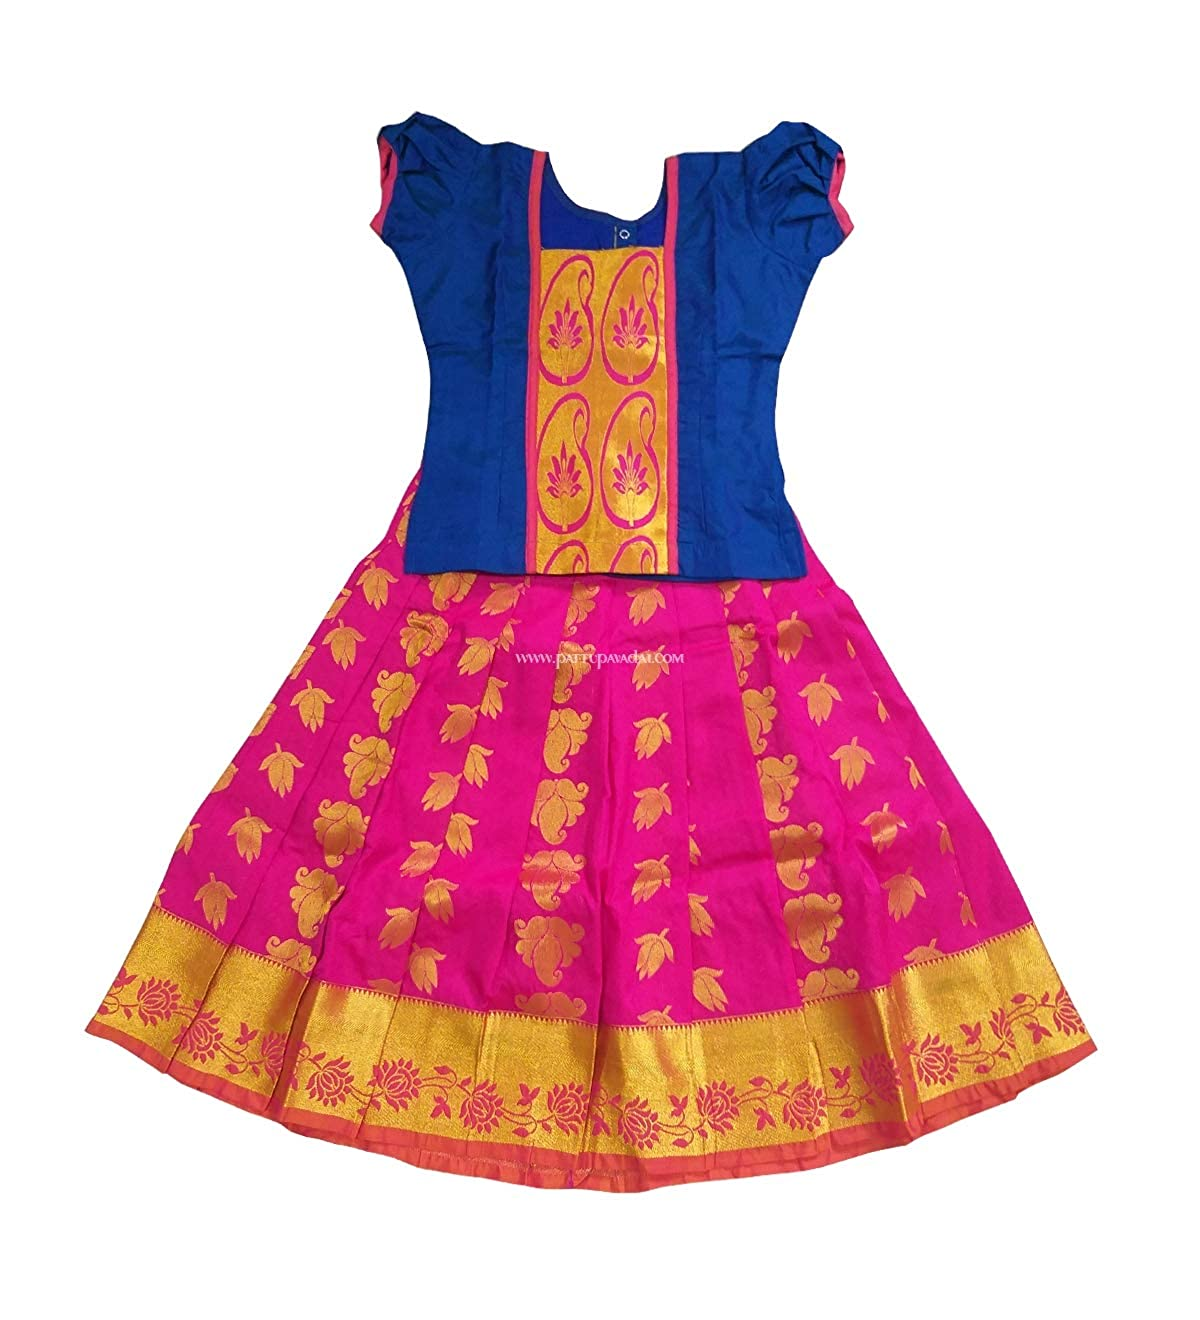 930cd52fed571 Pattu pavadai silk for baby girls kids pink and blue years clothing jpg  1200x1320 One year